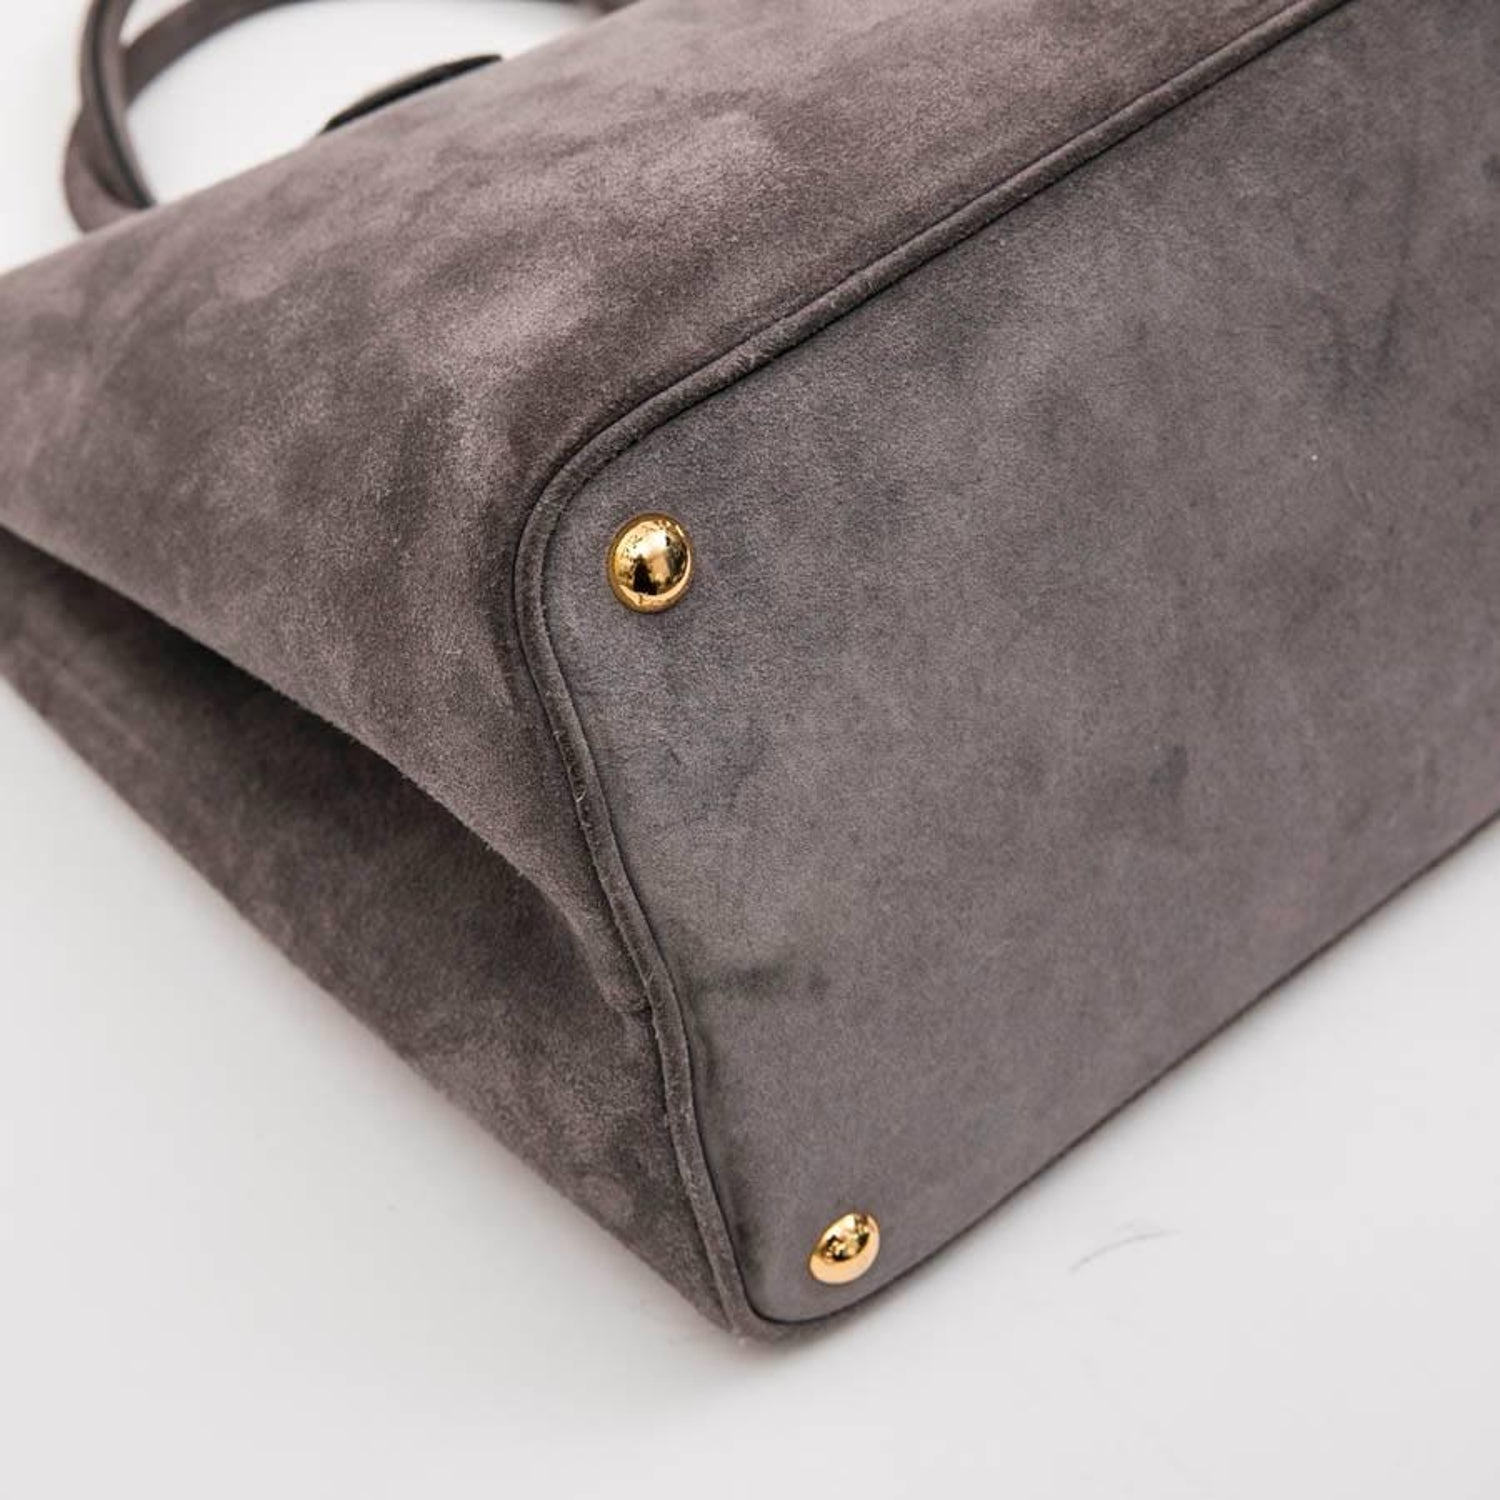 31a3a8a4d8 PRADA Bag in Pearly Gray Velvet Calfskin at 1stdibs